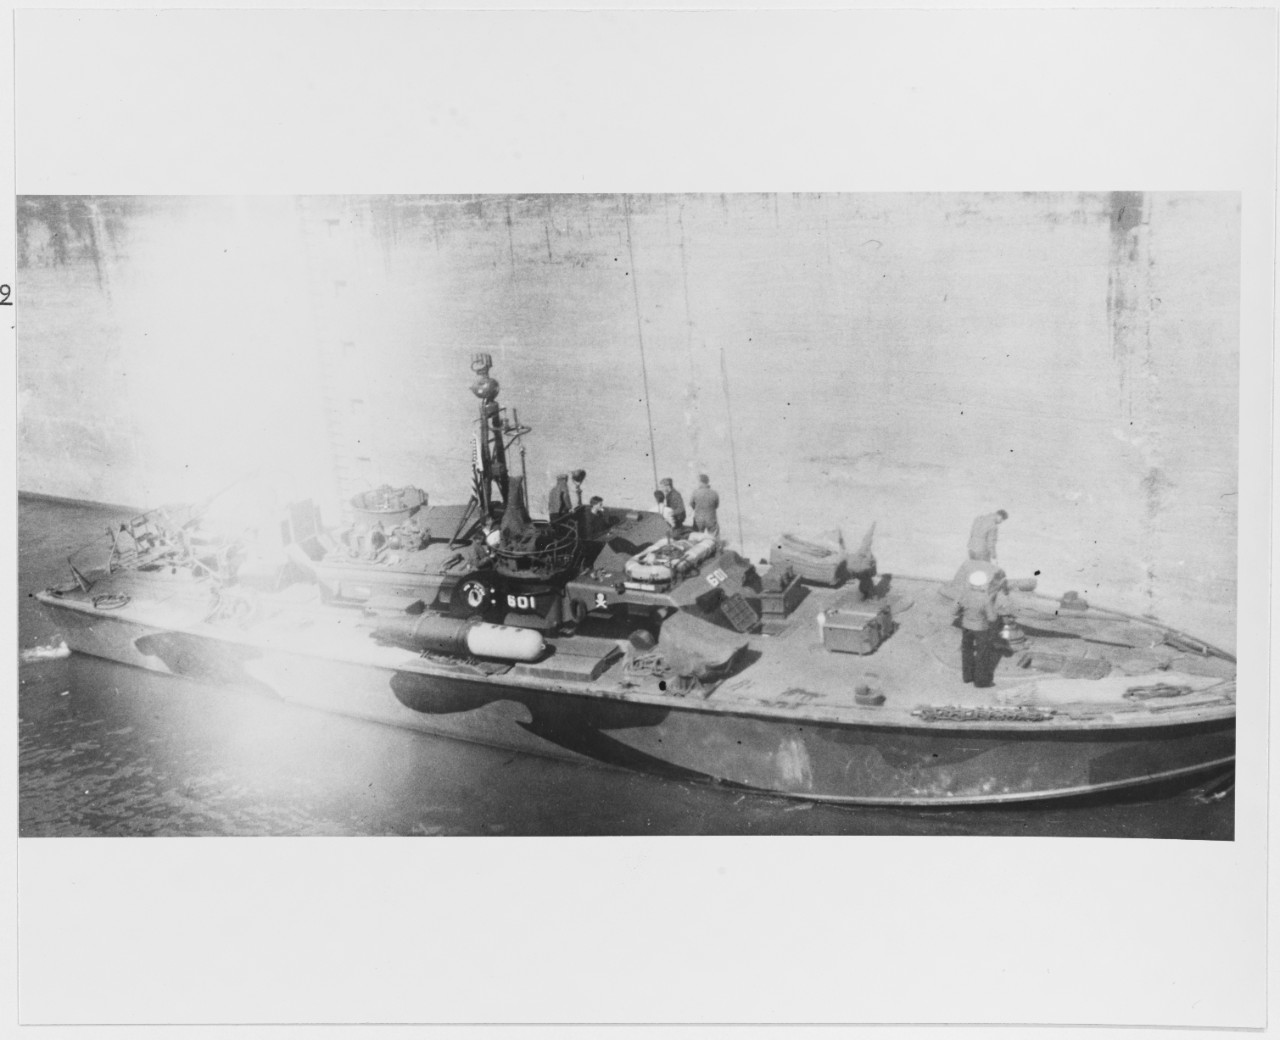 USS PT-601 photographed from USS LSM(R)-509 in Lock 41 on the Ohio River, on October 13, 1945